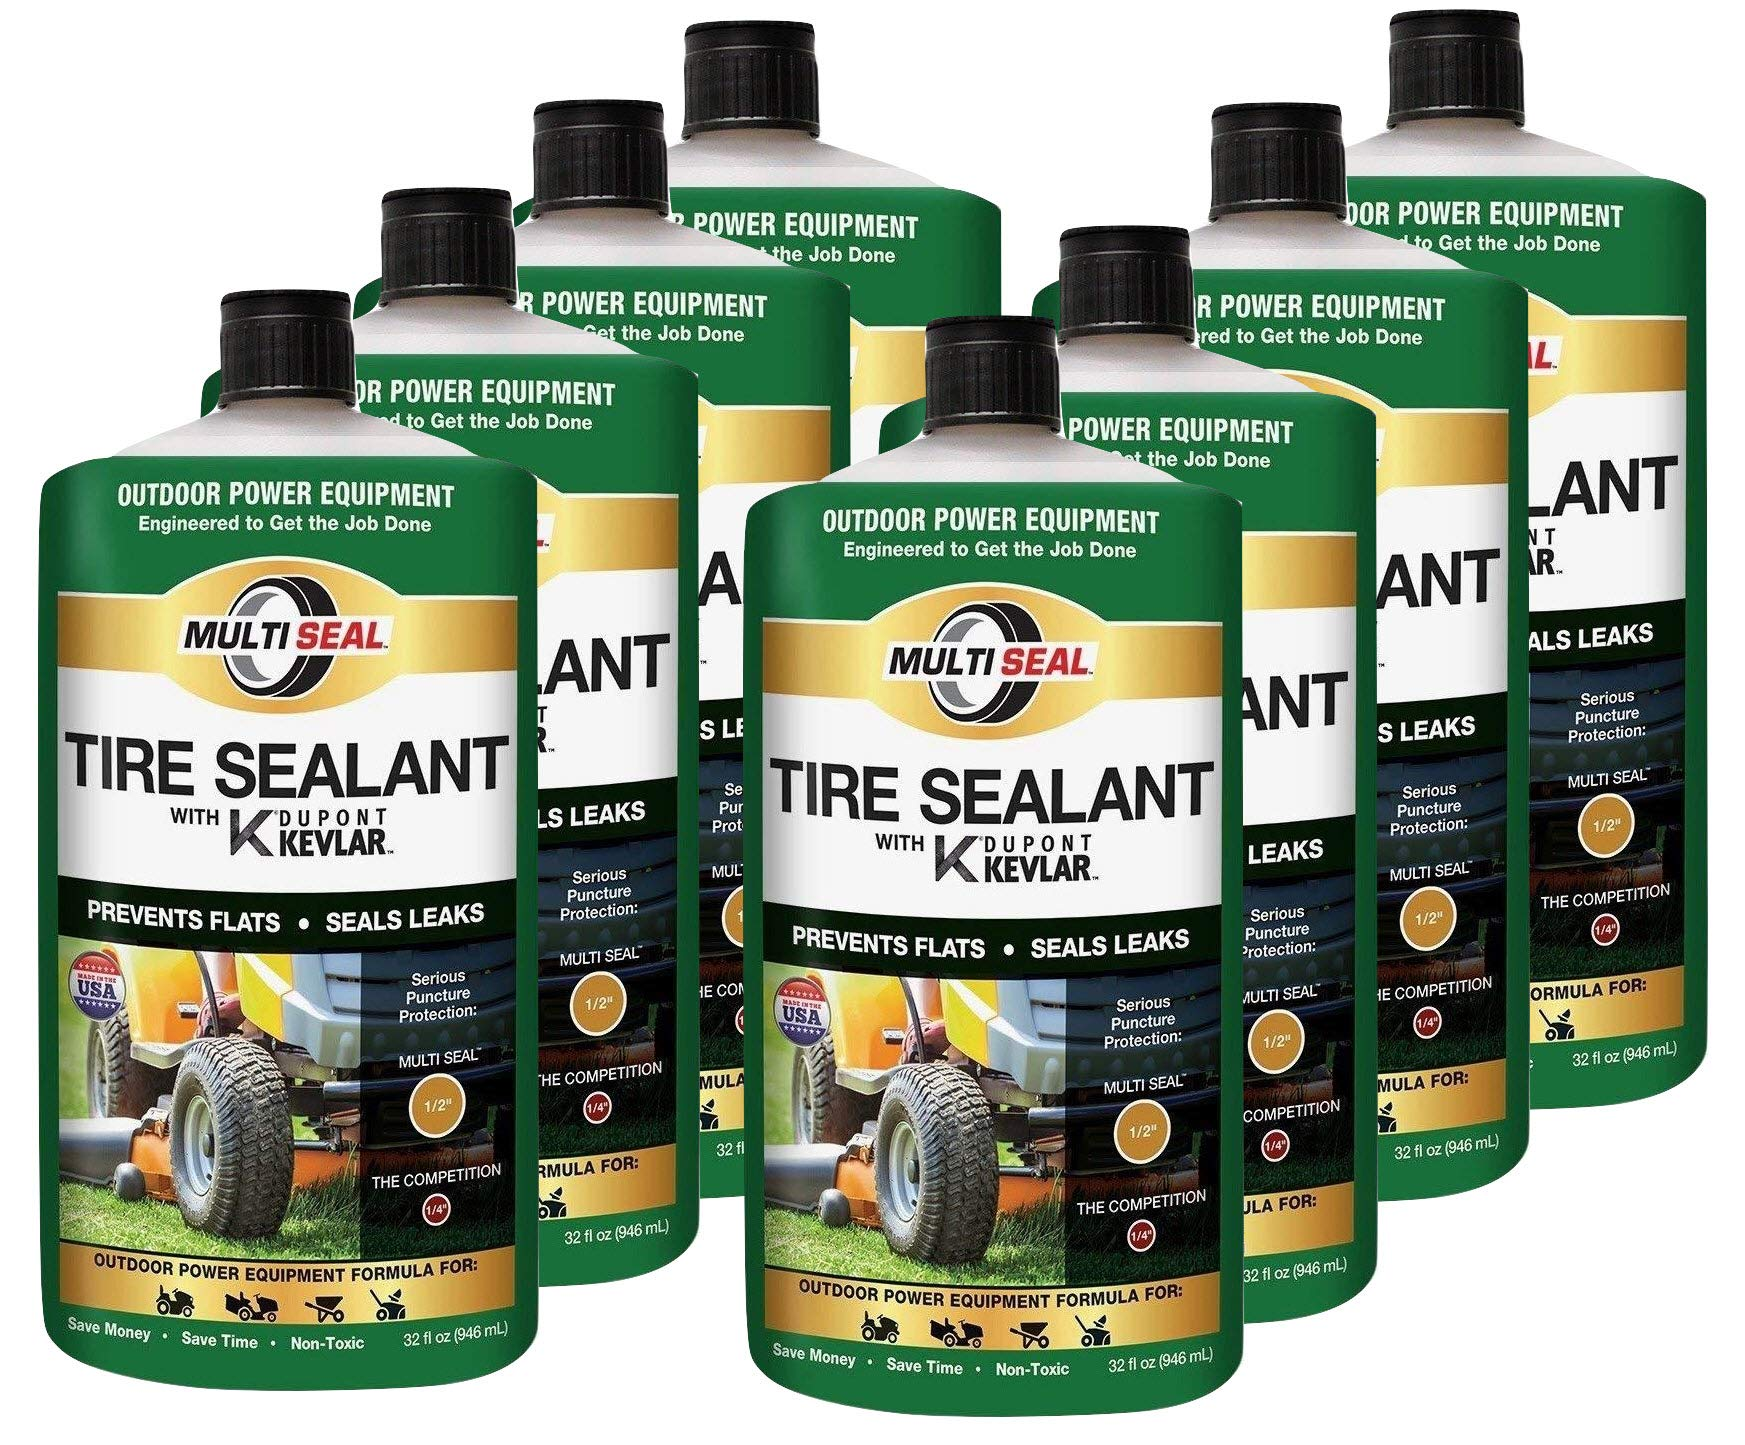 MULTI SEAL 20128 Tire Sealant with Kevlar (Outdoor Power Equipment Formula), Great for Lawn Mowers, Small Tractors, Wheelbarrows, Wood Chippers, Snow Blowers and more, 8-Pack (256 oz.) by MULTI SEAL (Image #4)